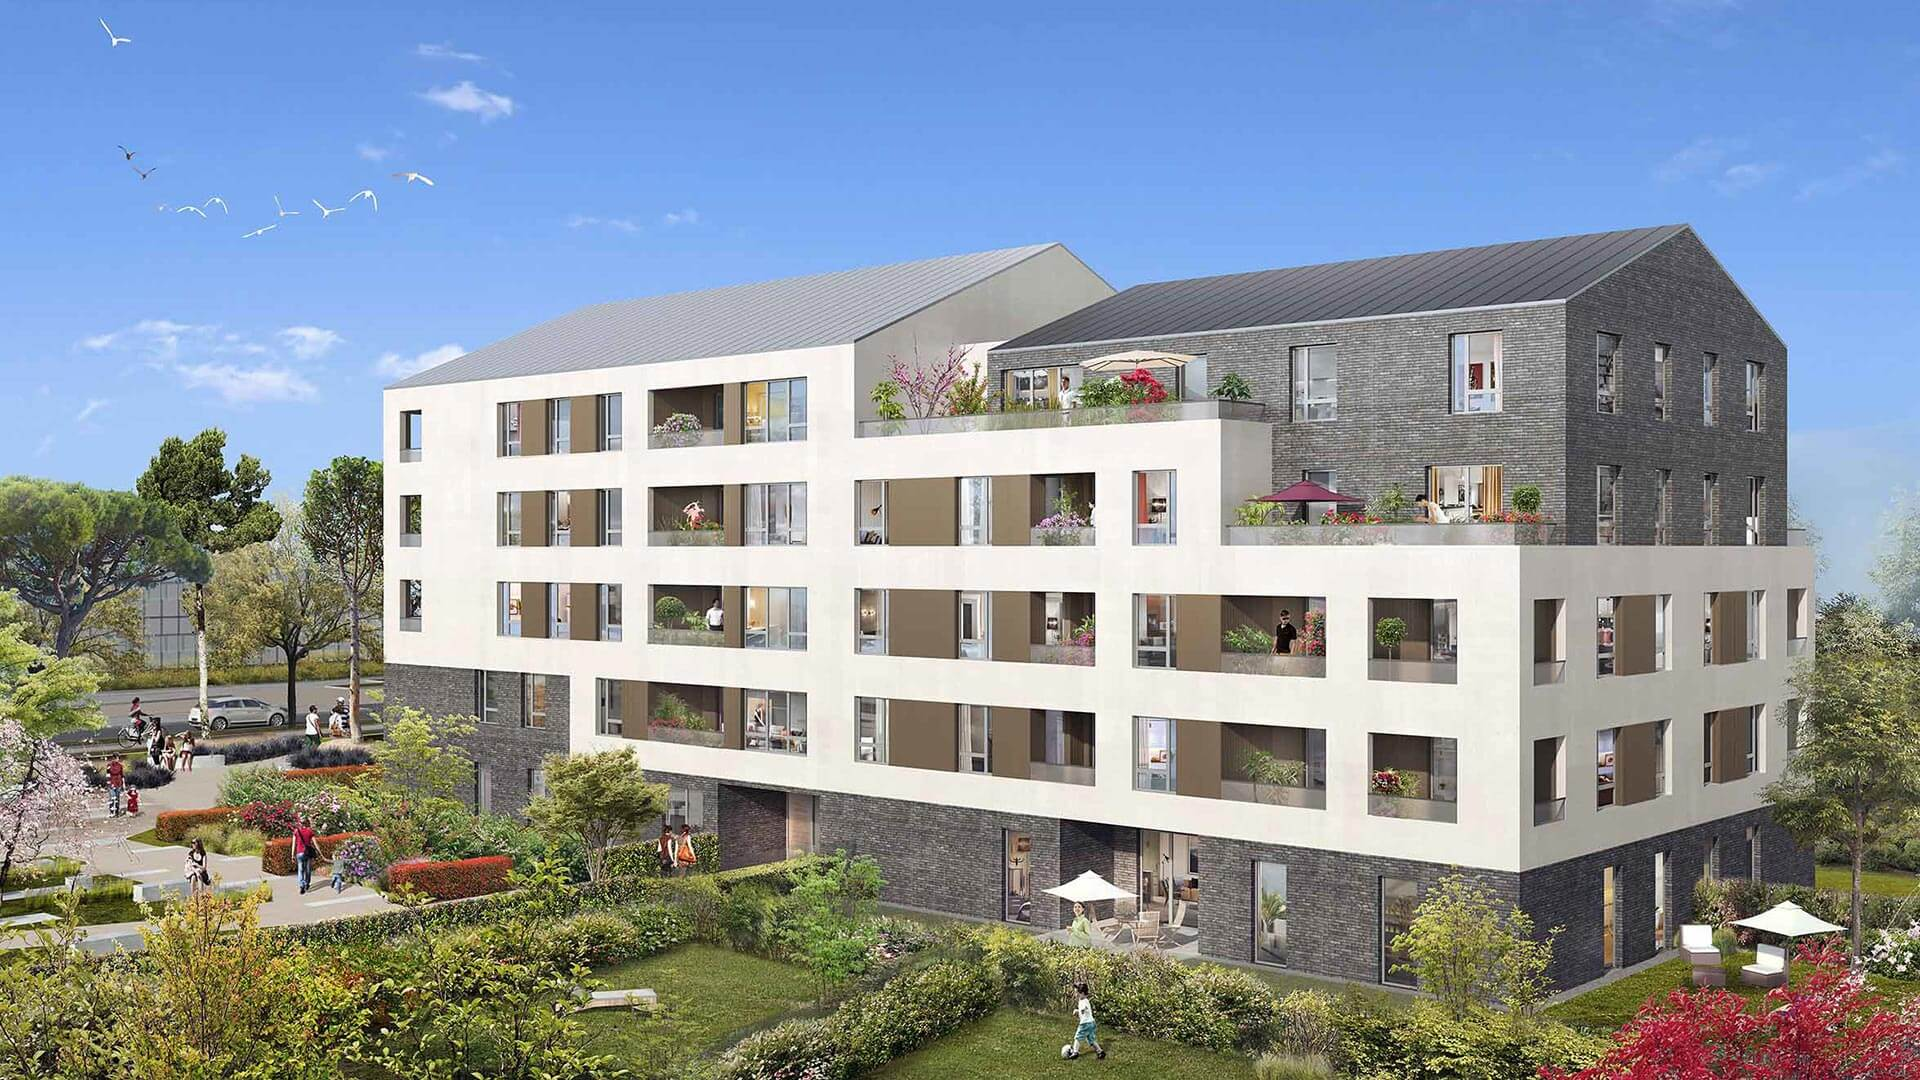 Le carr verger programme immobilier neuf lieusaint for Aide achat immobilier neuf